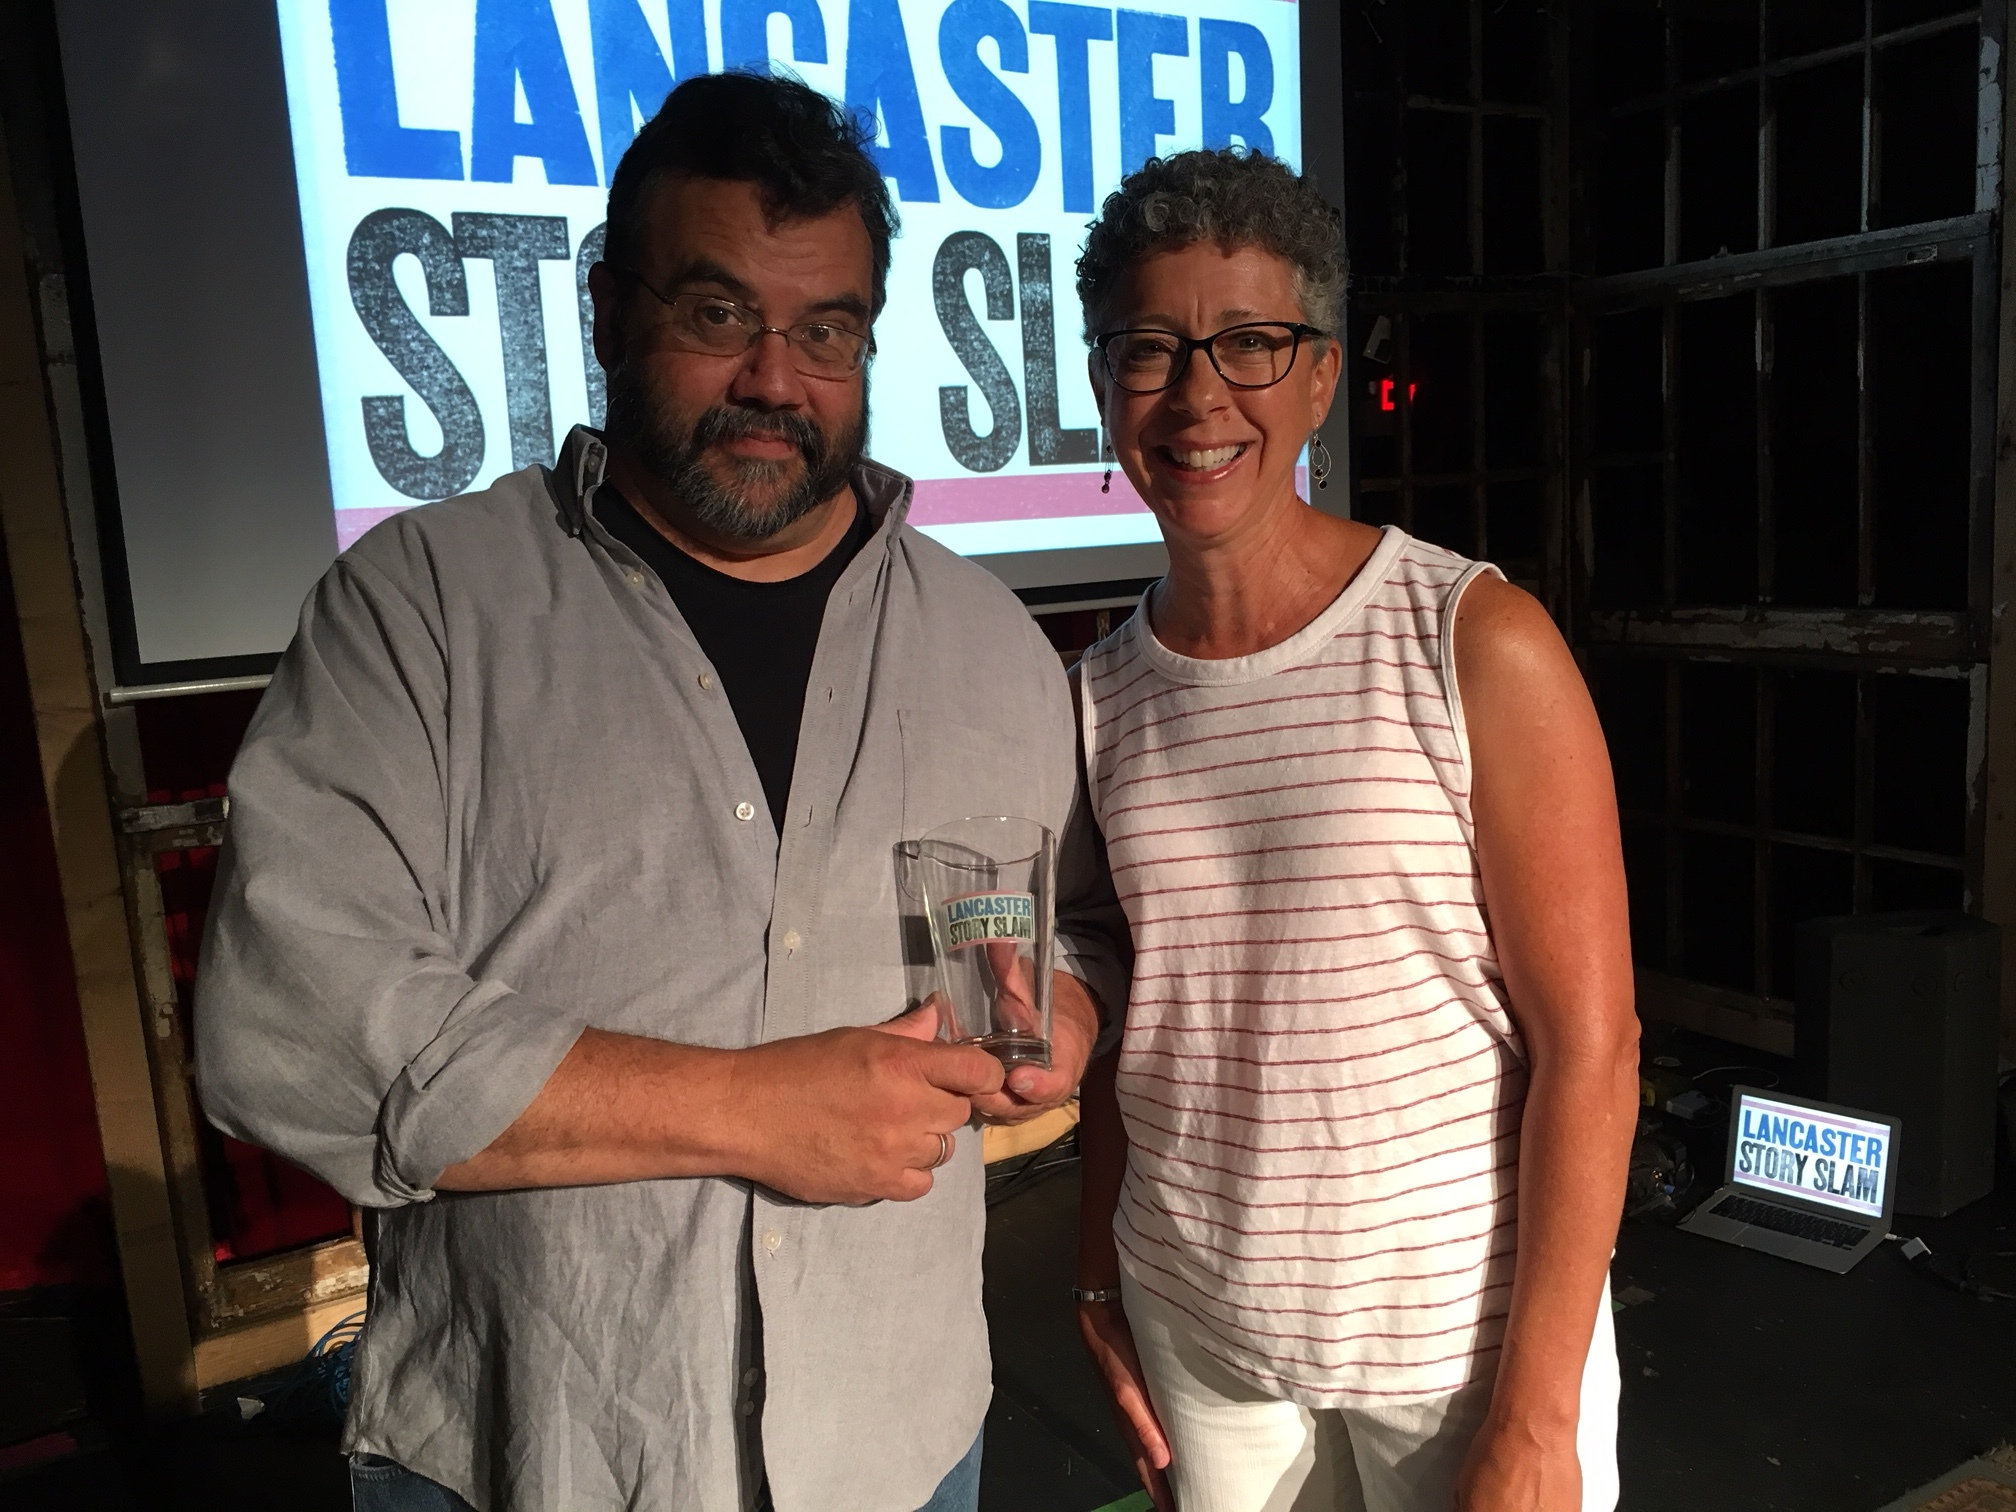 Dave smith poses with emcee Melissa Snavely.